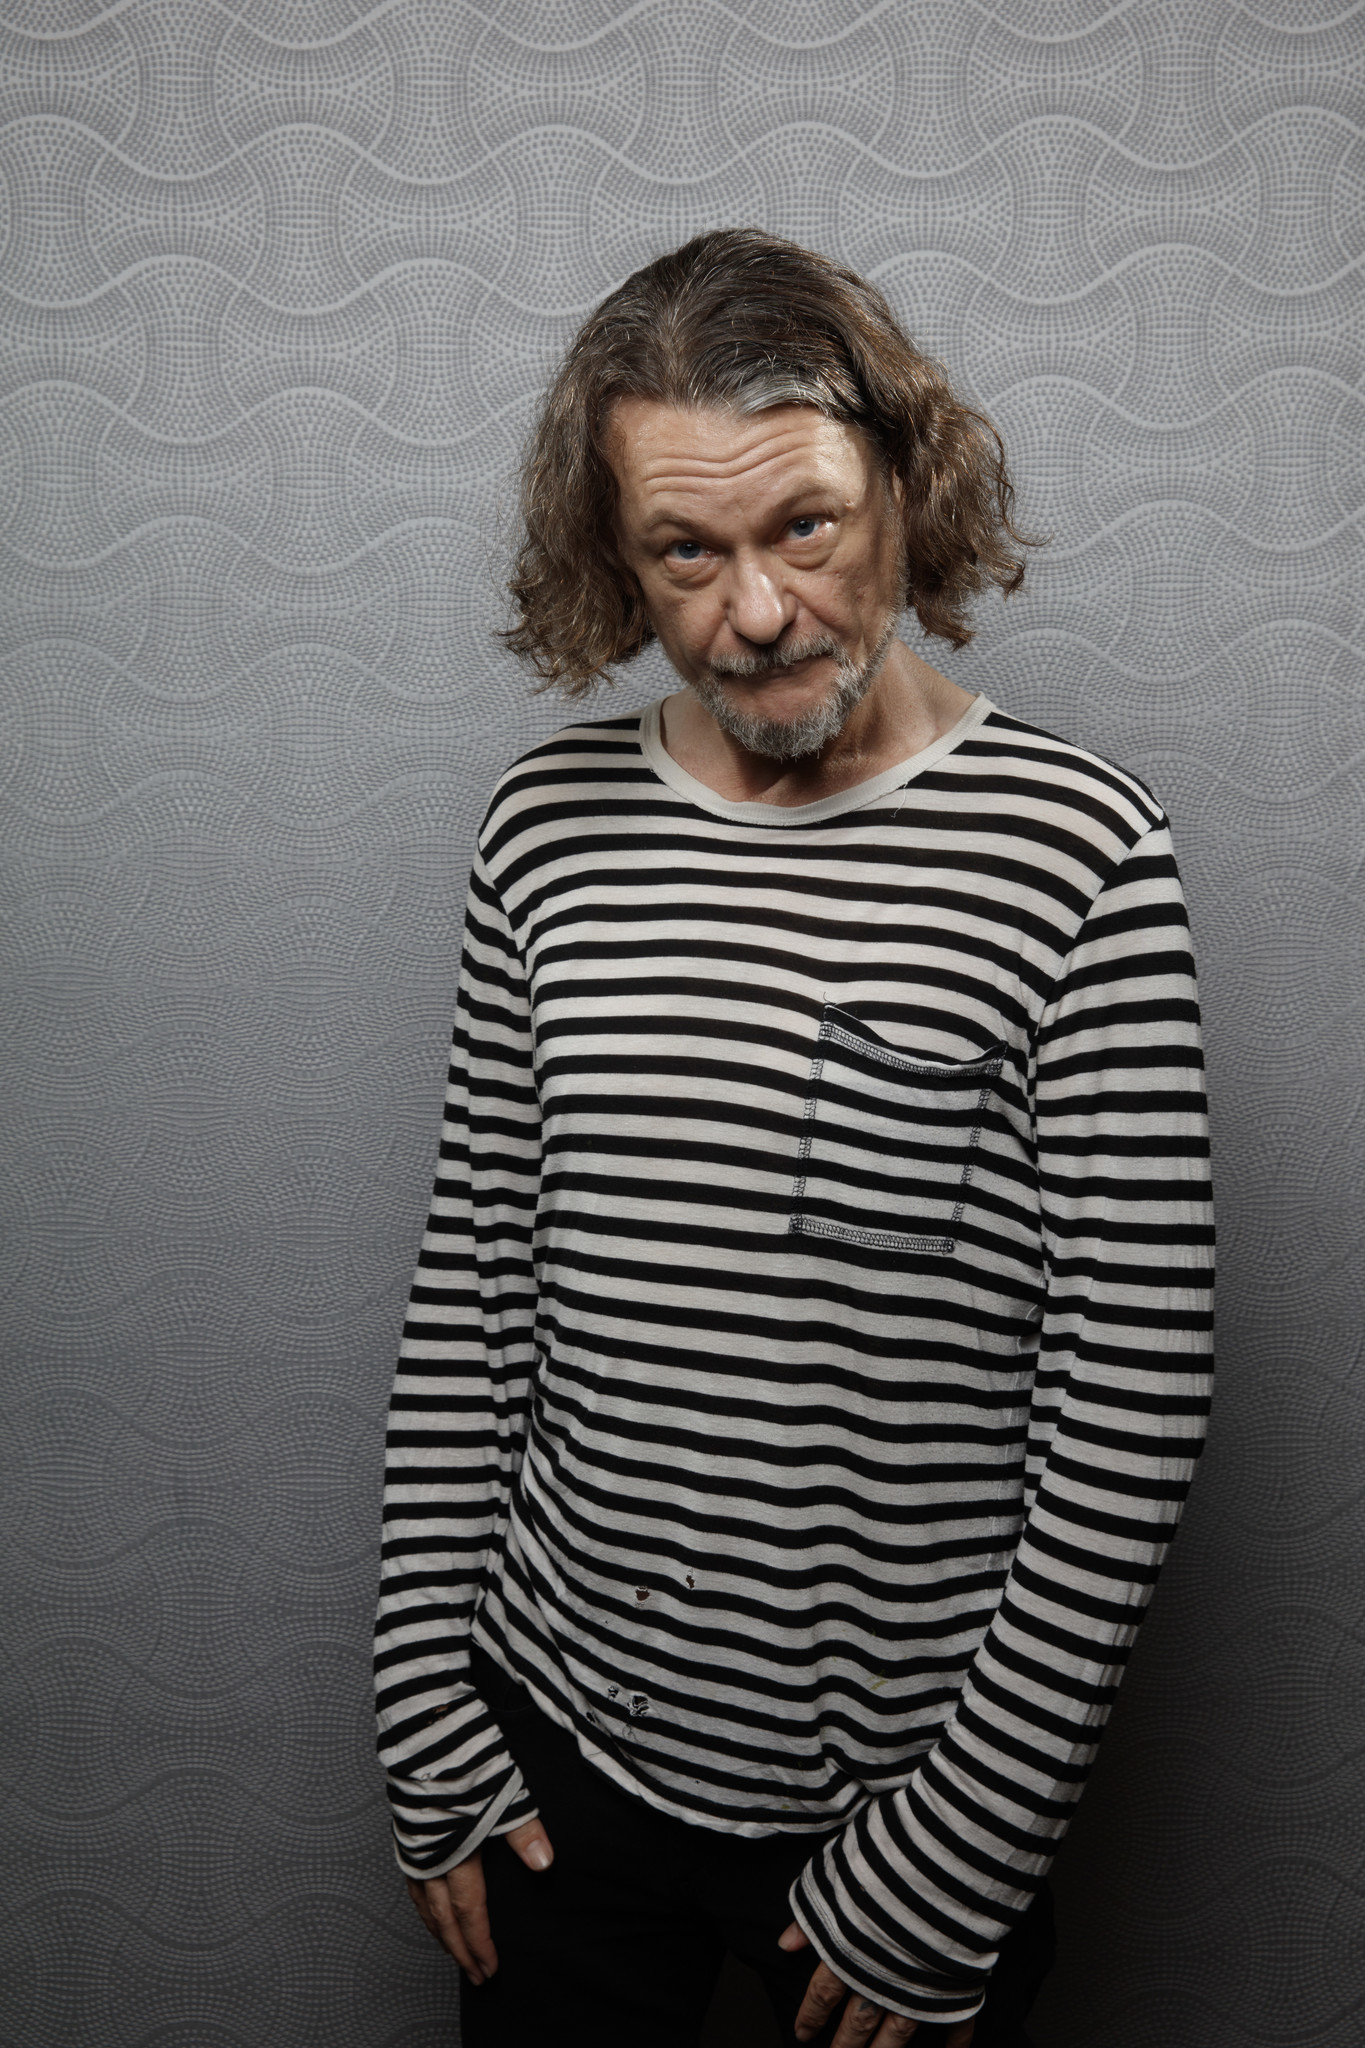 """SAN DIEGO, CALIF. -- JULY 20, 2018-- Ben Edlund from the television show """"Amazon Showrunners,"""" photo"""